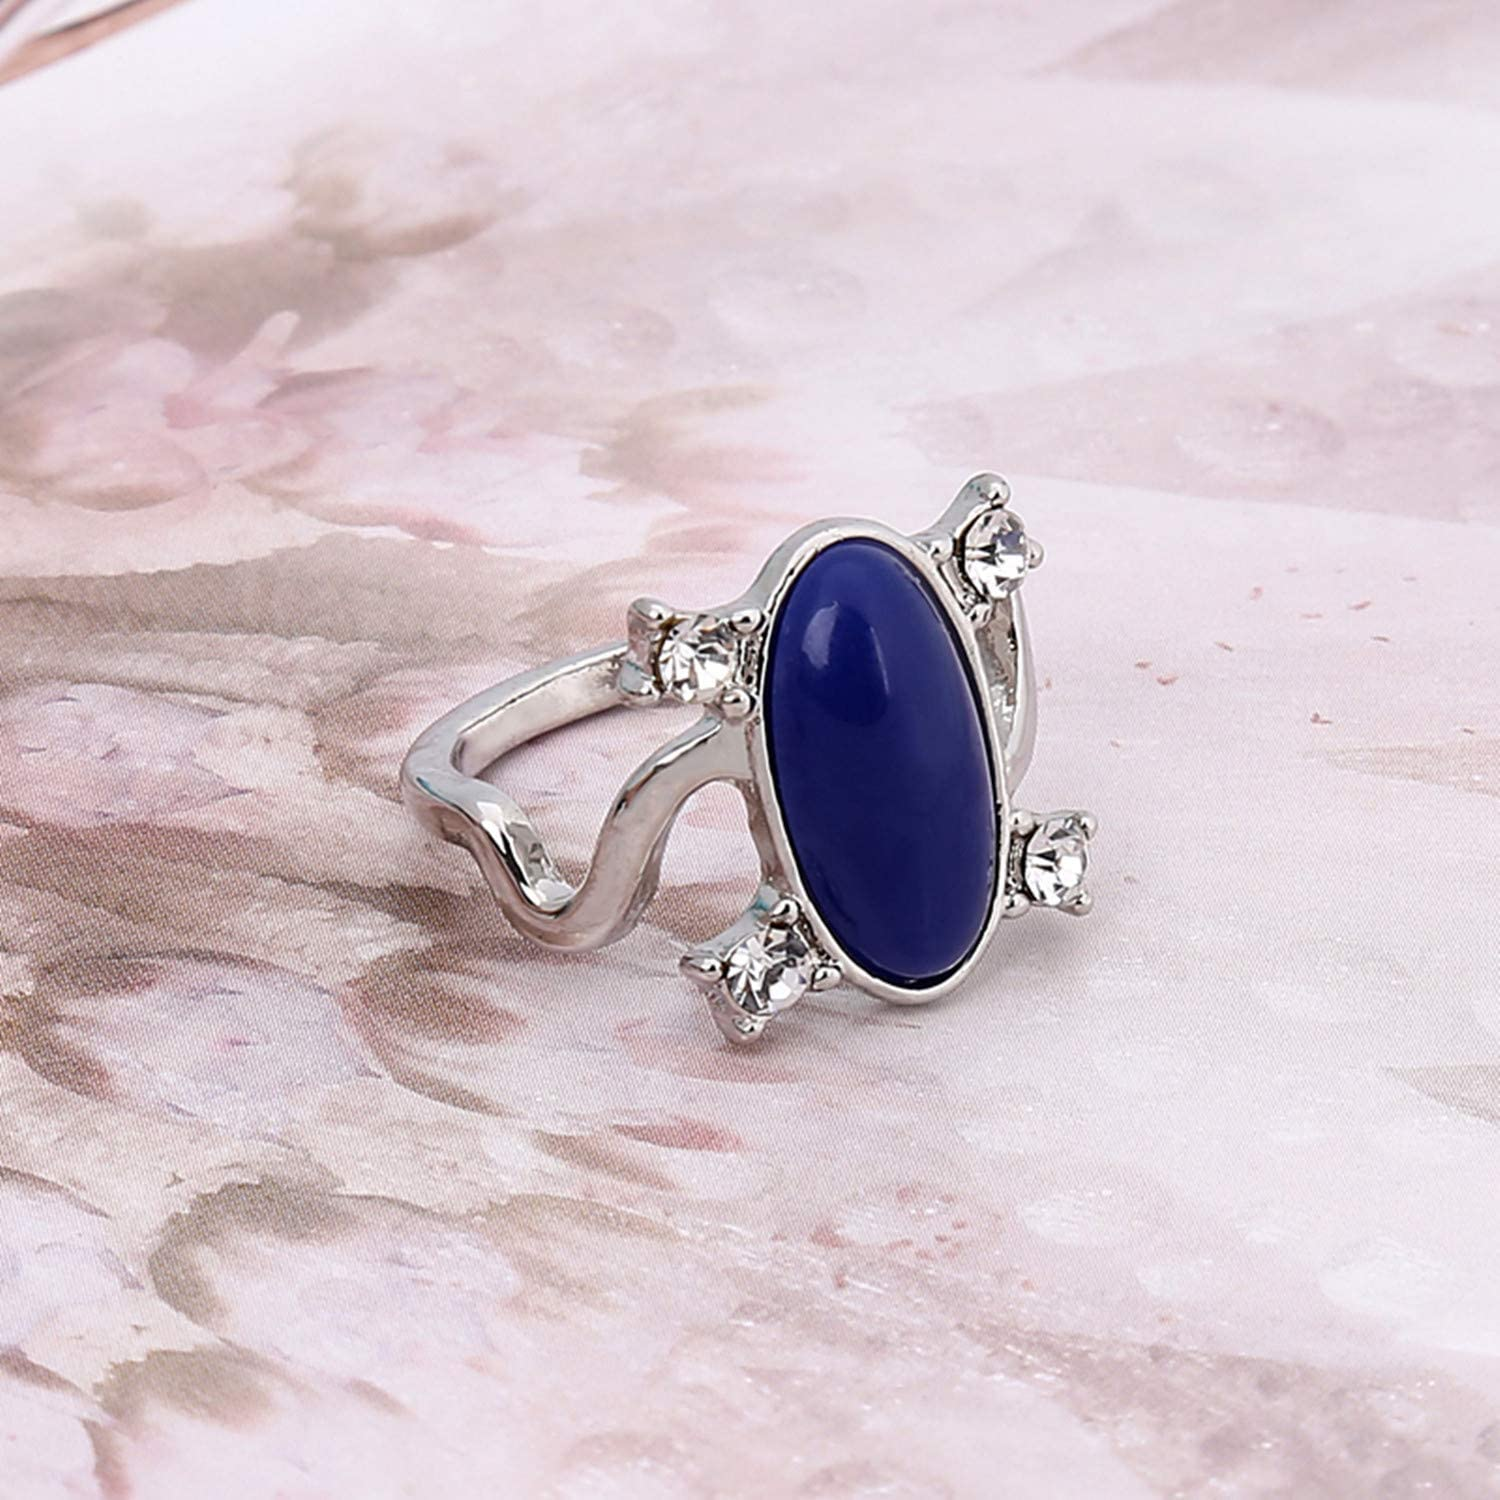 PPX Daywalking Katherine Necklace Pendant Charm Necklace-Royal Blue and Vampire Diaries Daylight Walking Signet Damons Ring for Fans with Transparent Box